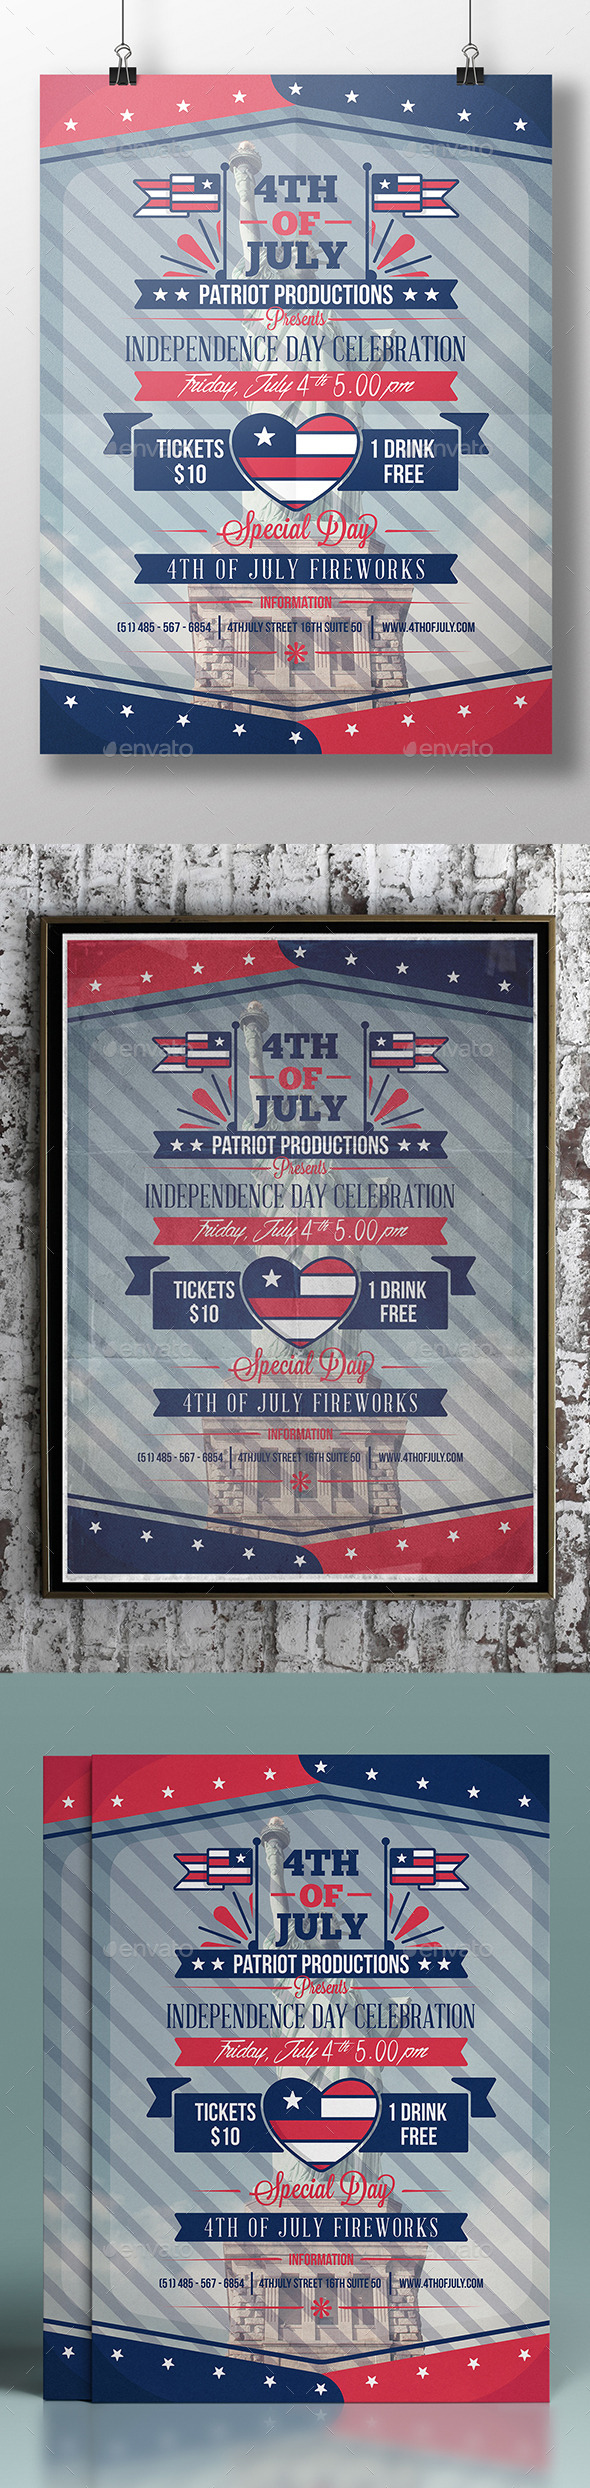 4th Of July Flyer Template - Clubs & Parties Events